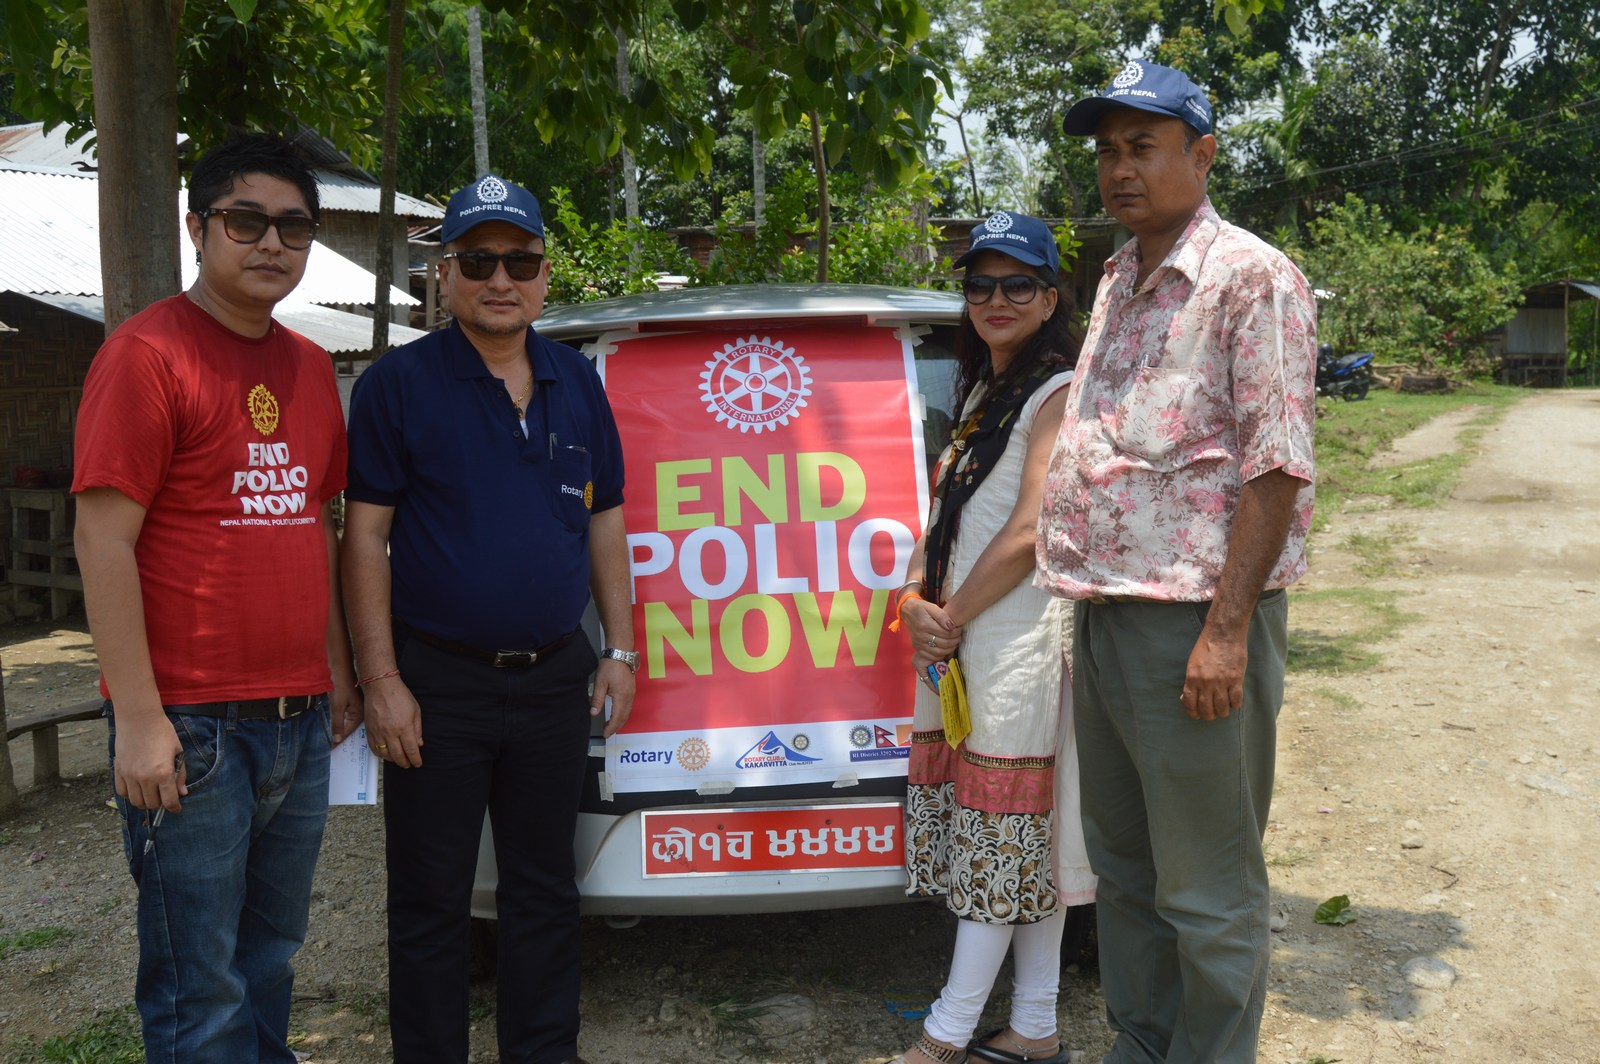 Polio Booth Inspection 31